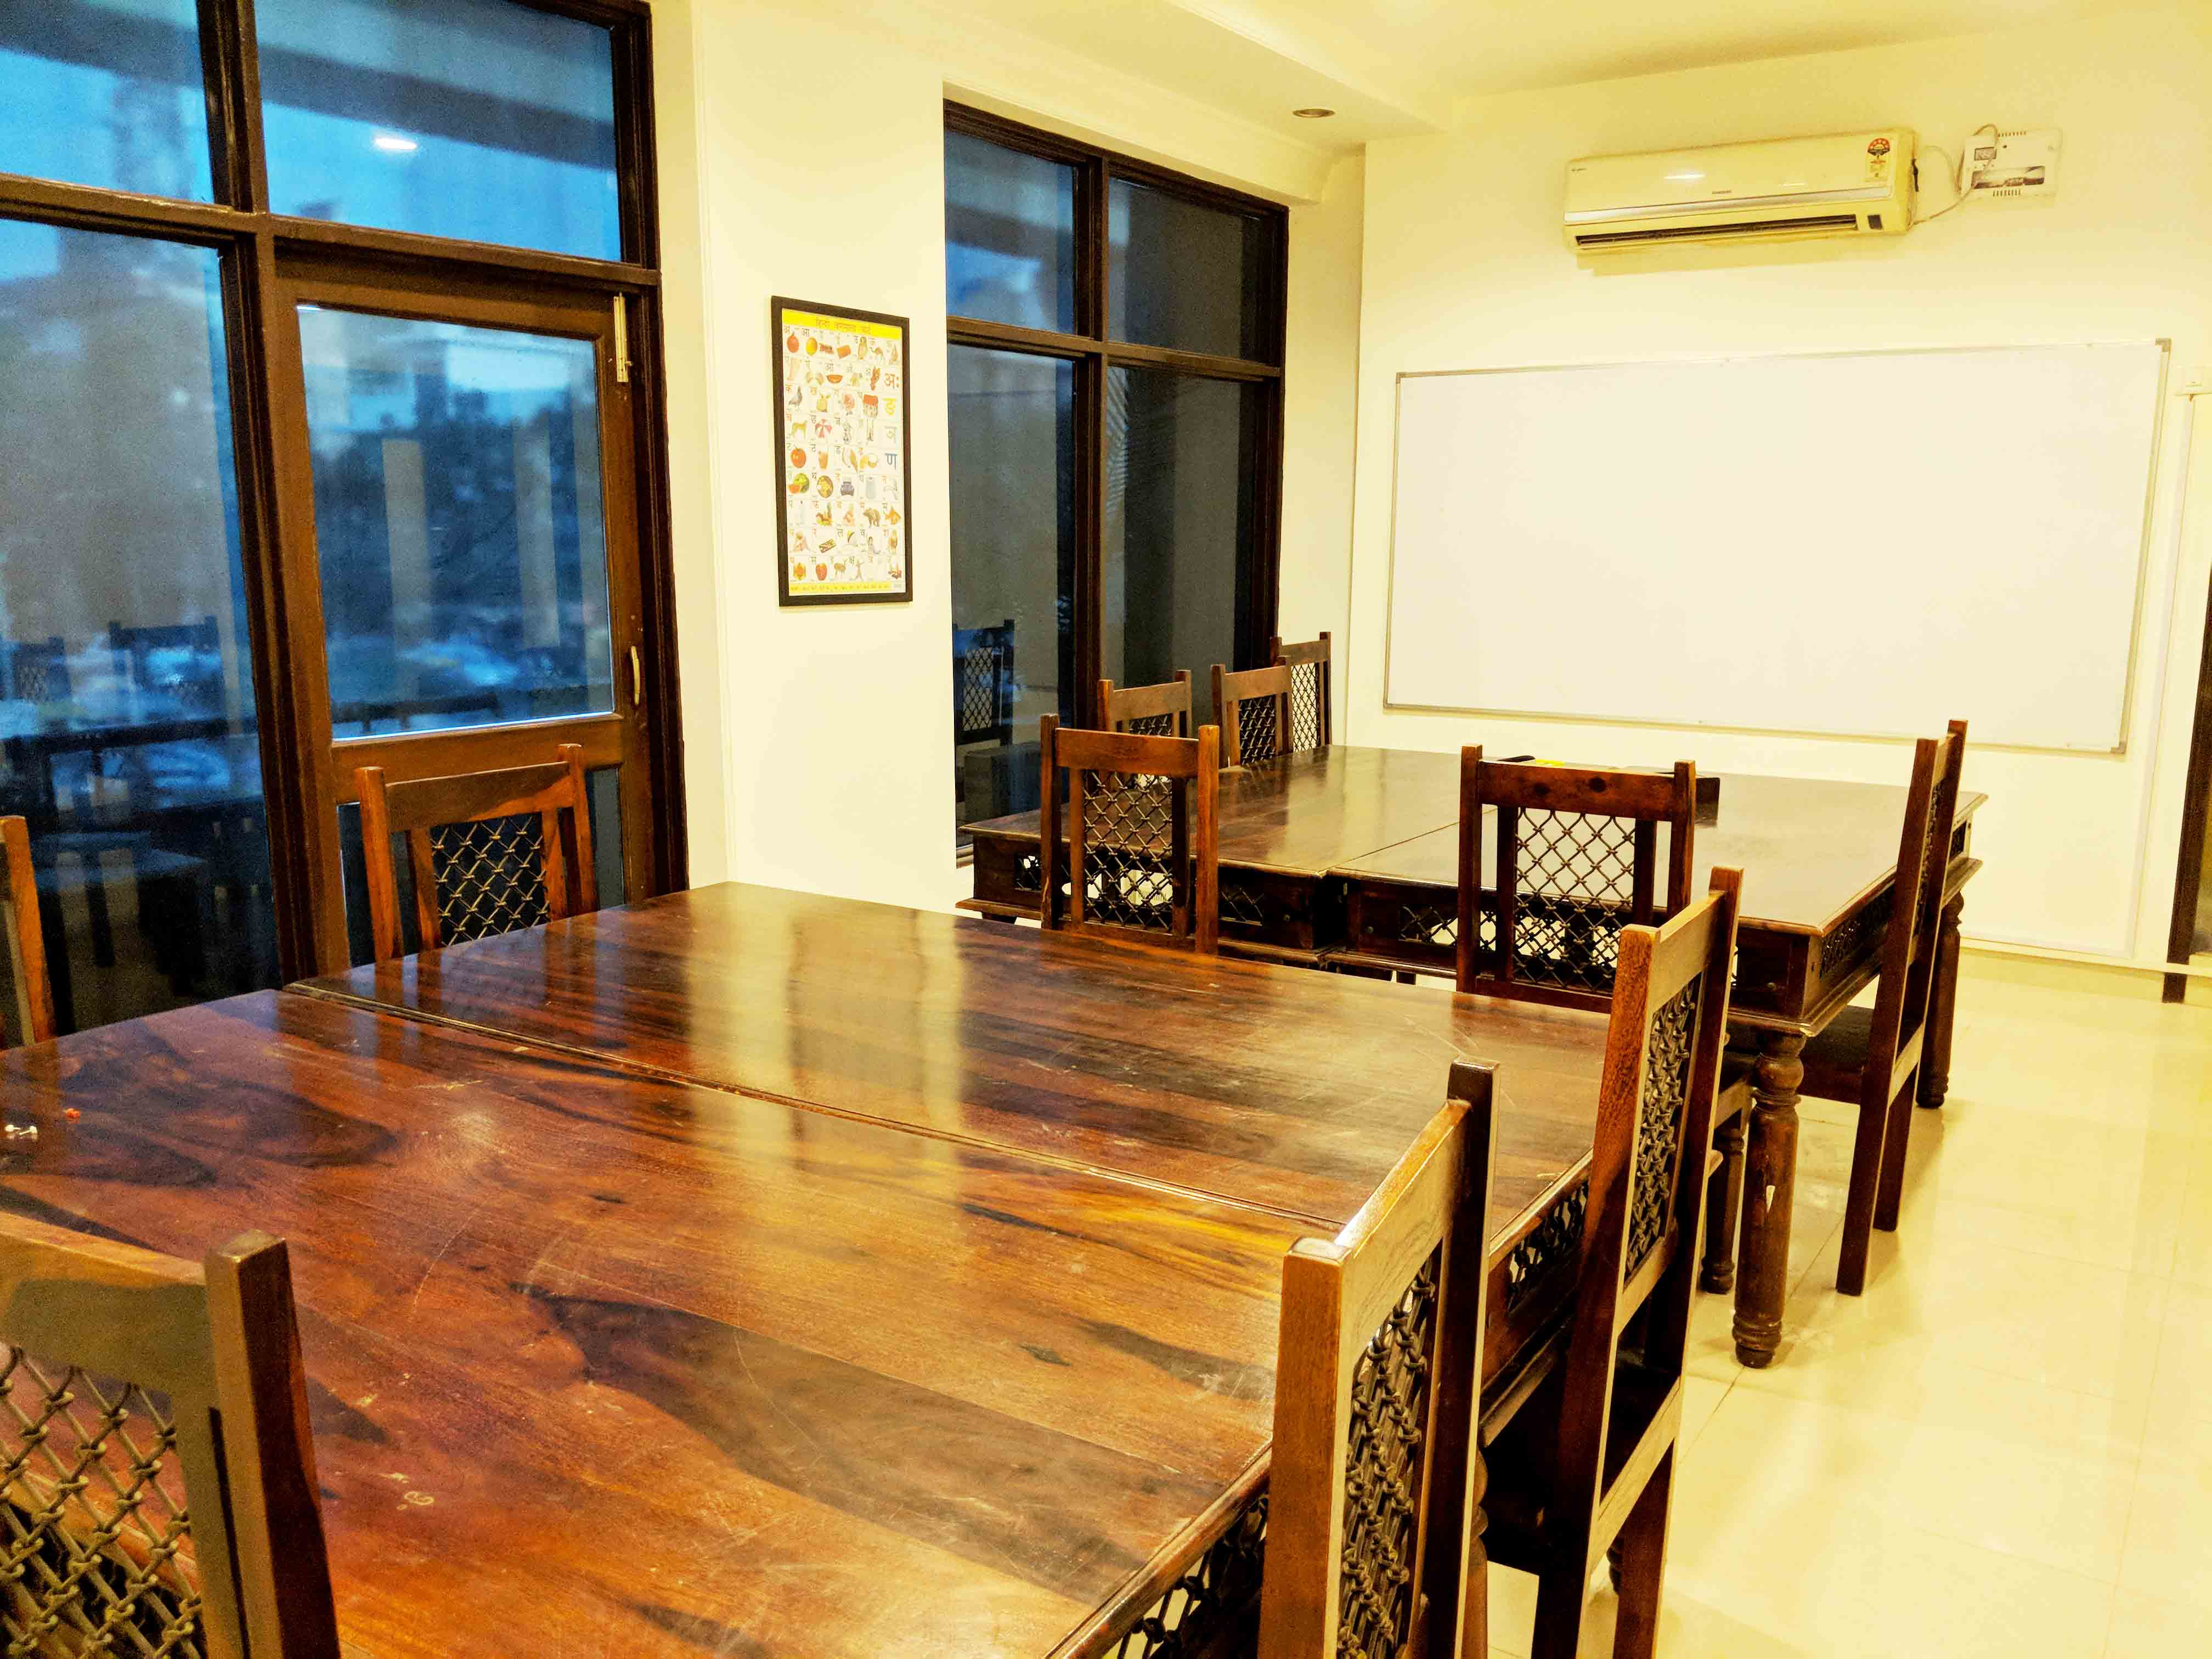 South Delhi Space at SpaceBoat